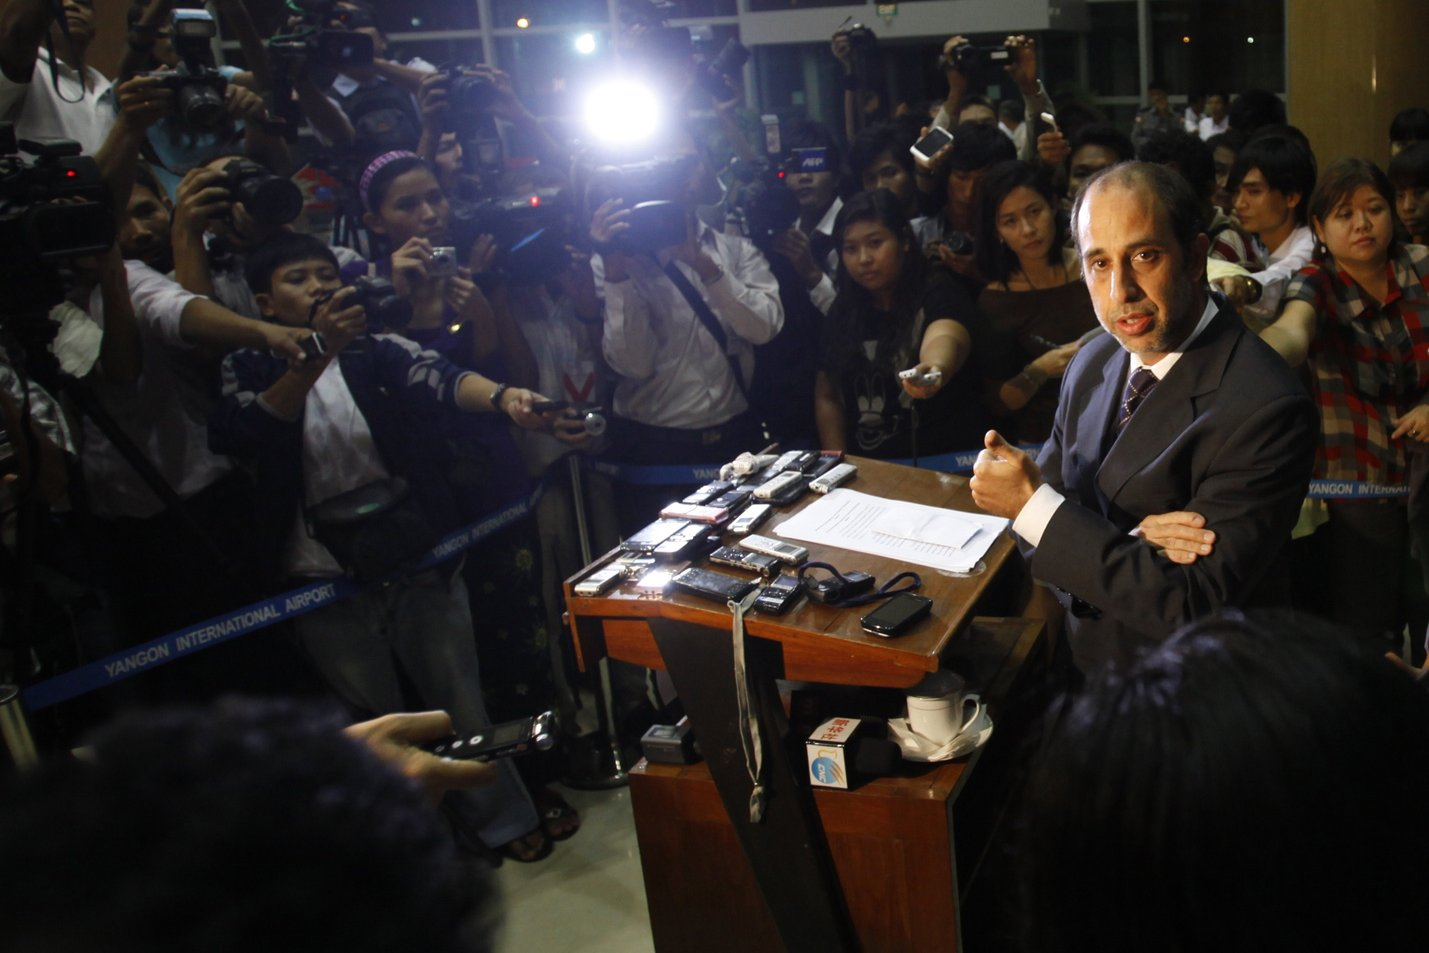 United Nations Human Rights envoy Tomas Ojea Quintana talks to journalists during a press conference at the Yangon international airport on 4 August AFP PHOTO / YE AUNG THU